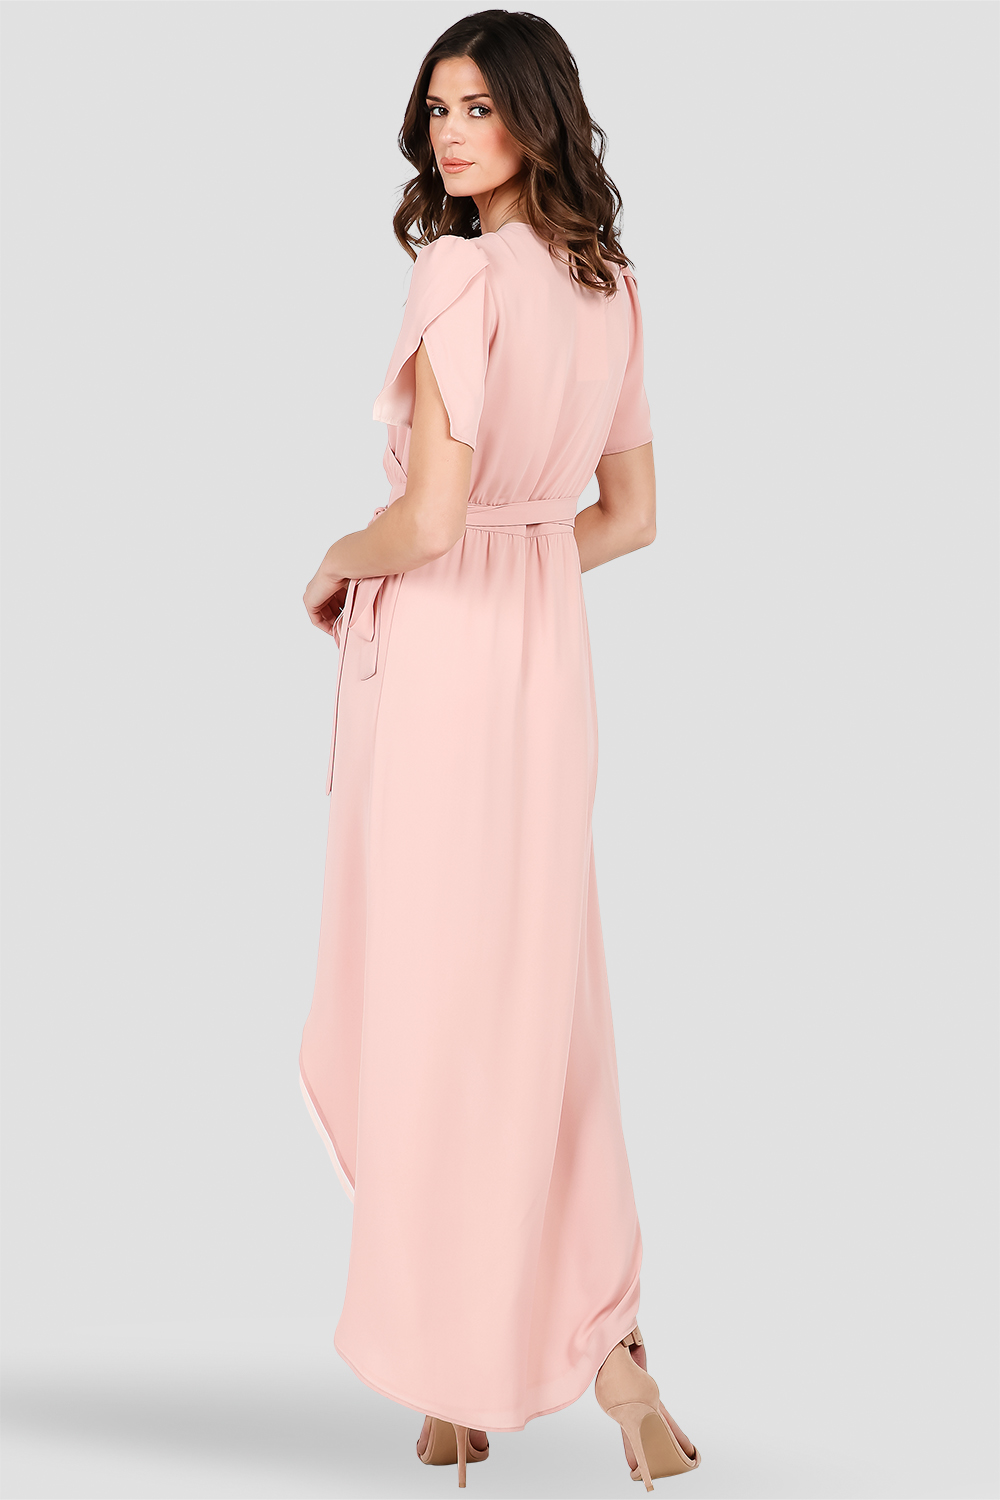 Women's Deep Pink Short-Sleeve Maxi Wrap Dress